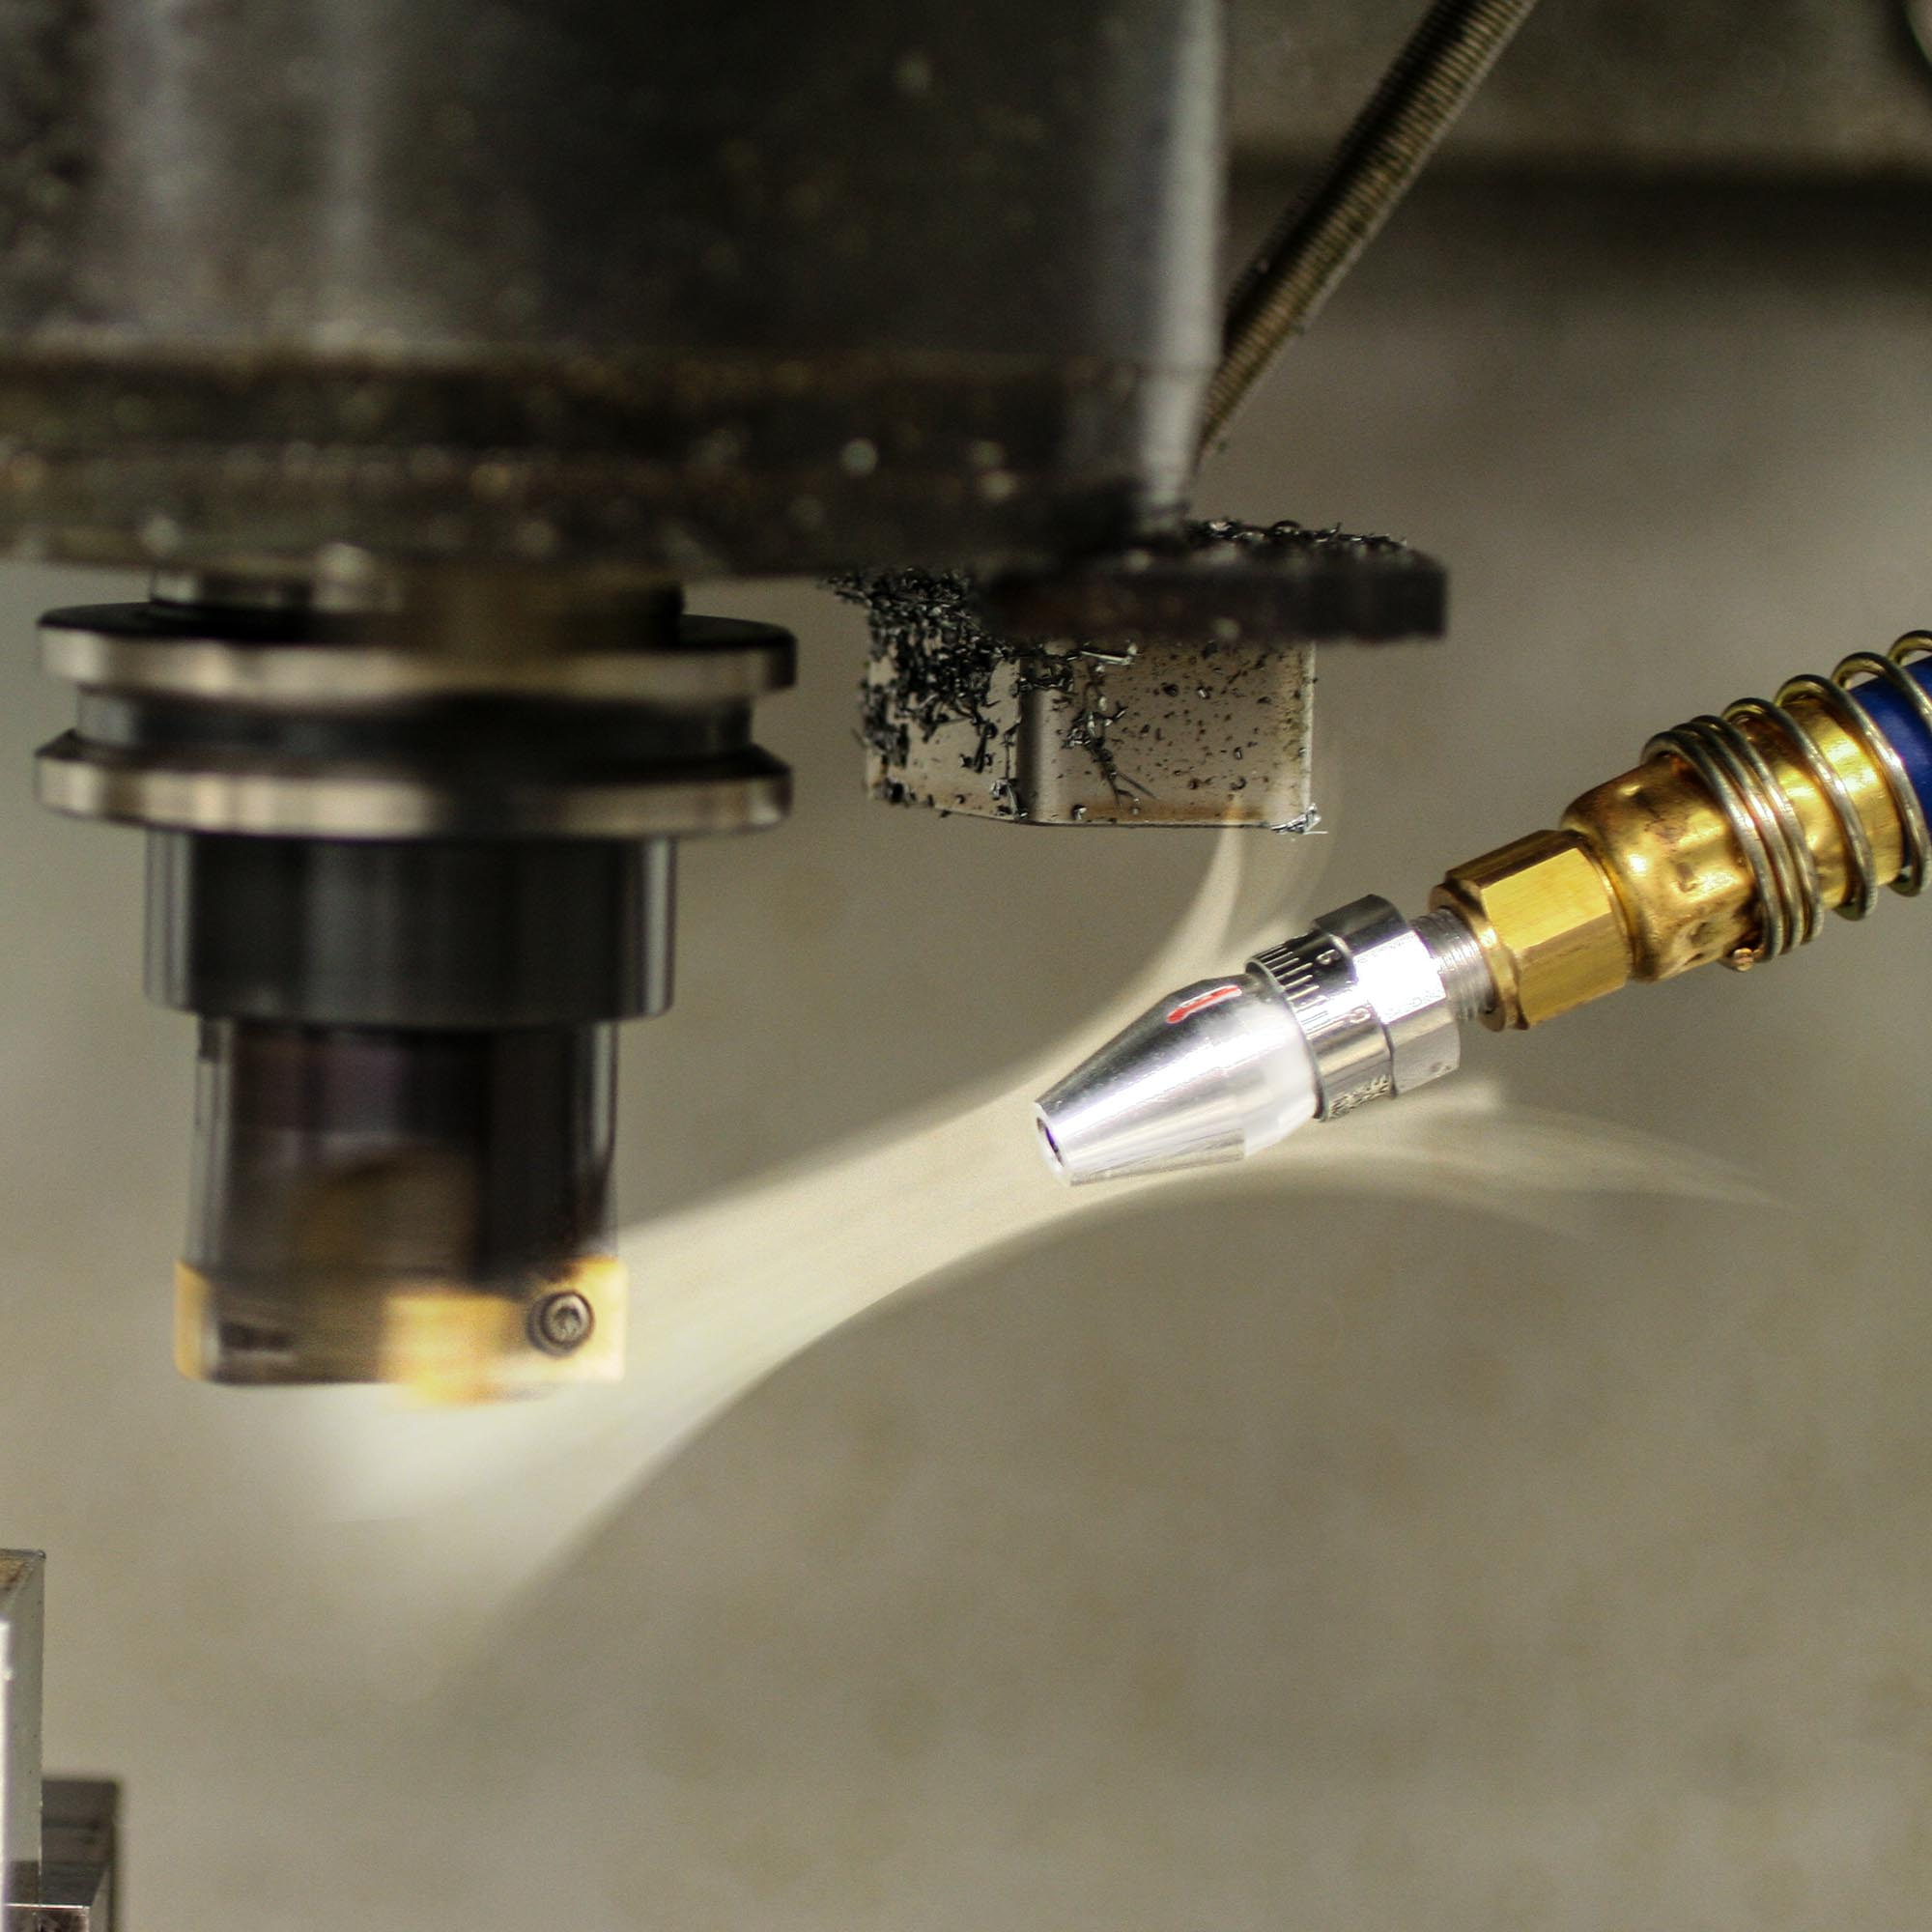 Adjusting the air nozzle opens and closes the air gap which produces more or less force and flow from the nozzle